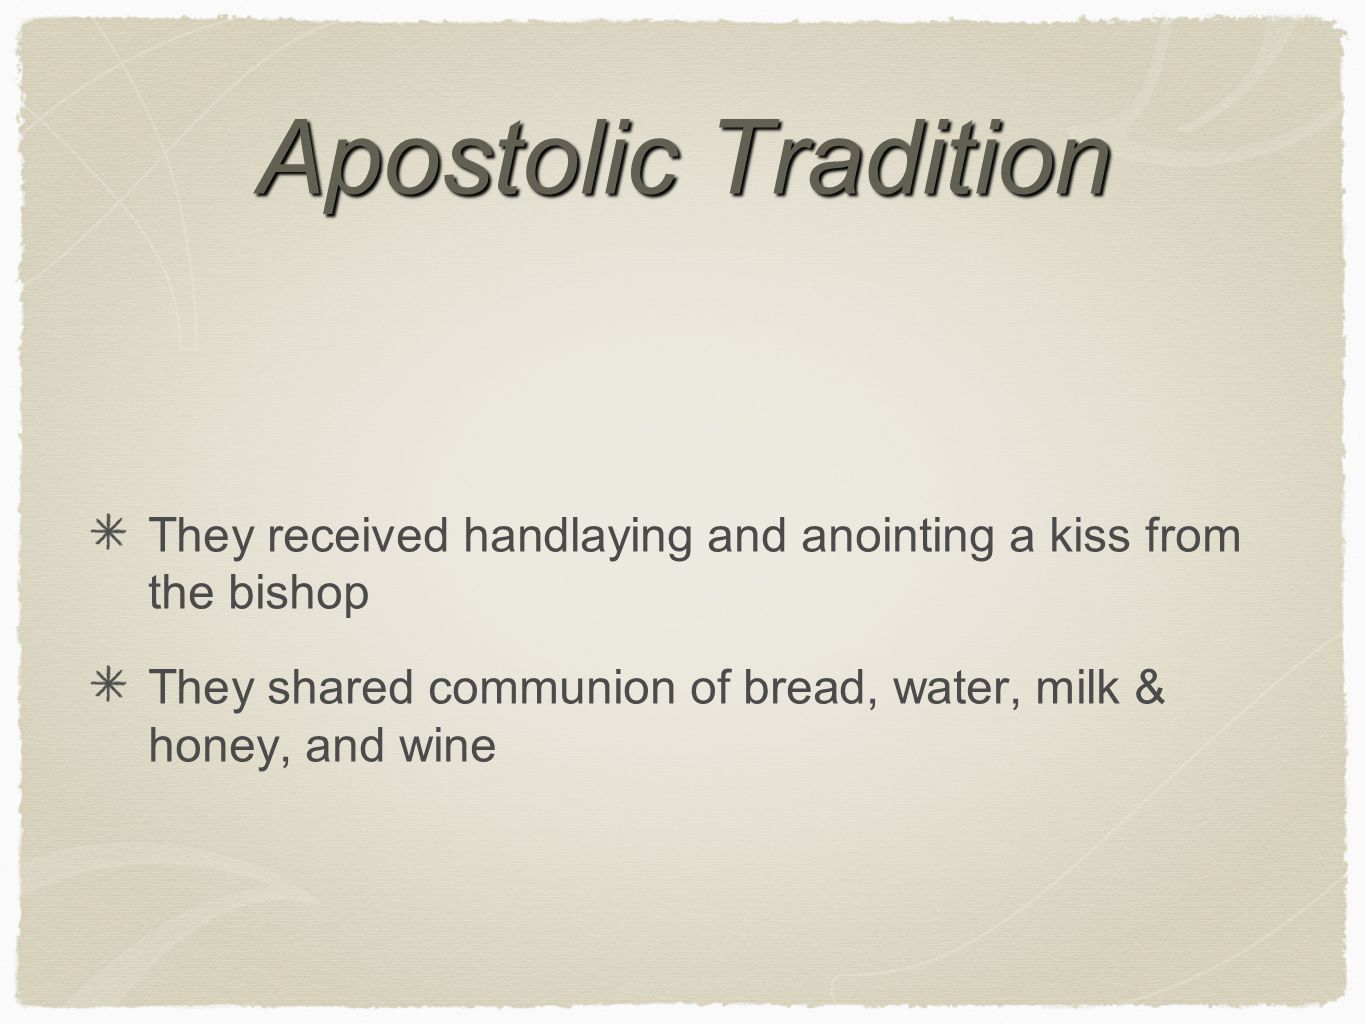 Apostolic Tradition They received handlaying and anointing a kiss from the bishop.